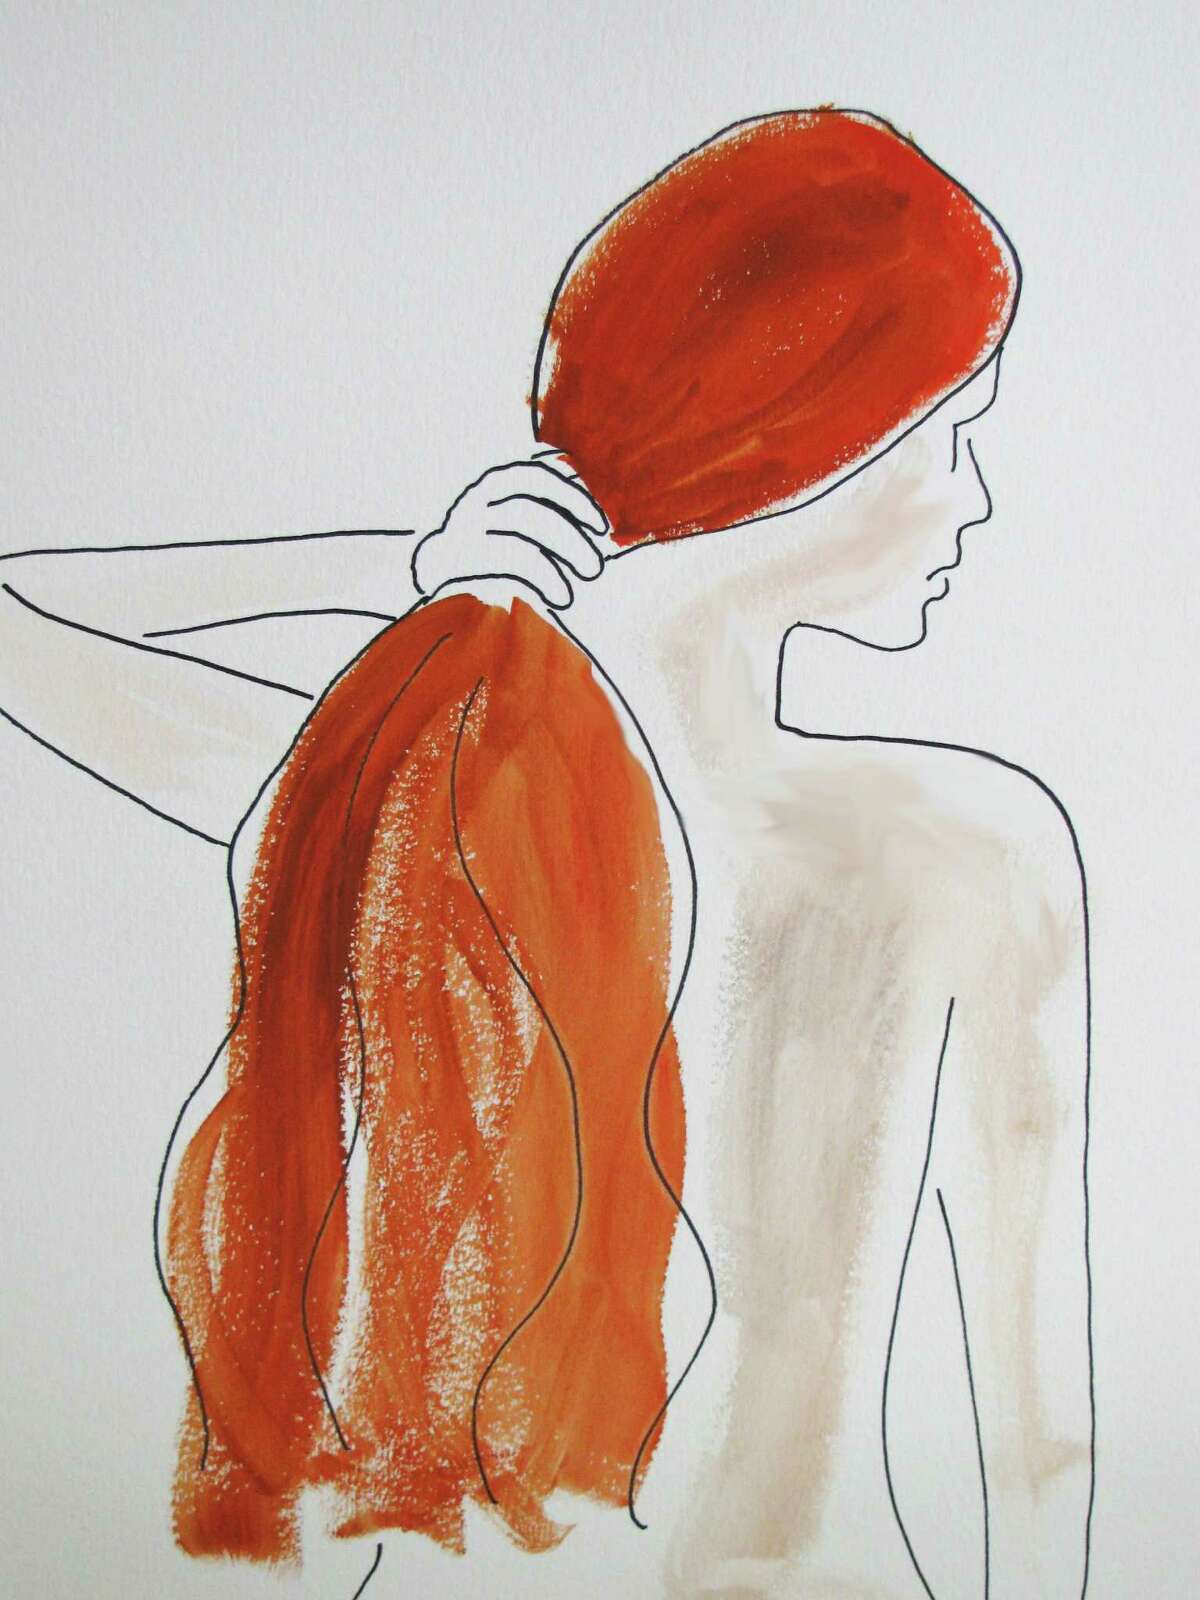 """As seen in """"Redhead,"""" simple lines and judicious use of color is a style favored by Greenwich artist Fereshteh Priou. Some of her works are on display through Thursday, Oct. 15, at Les Beaux Arts Gallery in Greenwich."""